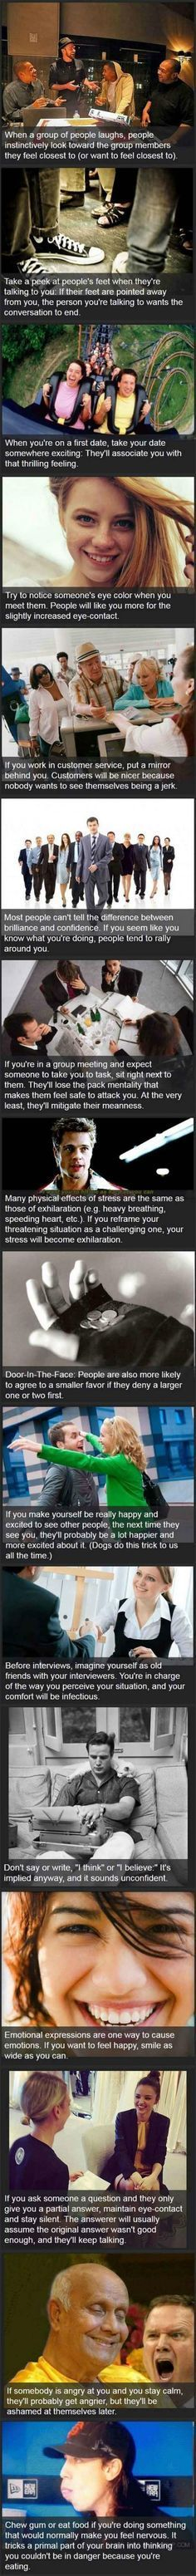 literally every single one of these has a scientific psychological explanation, so cool!